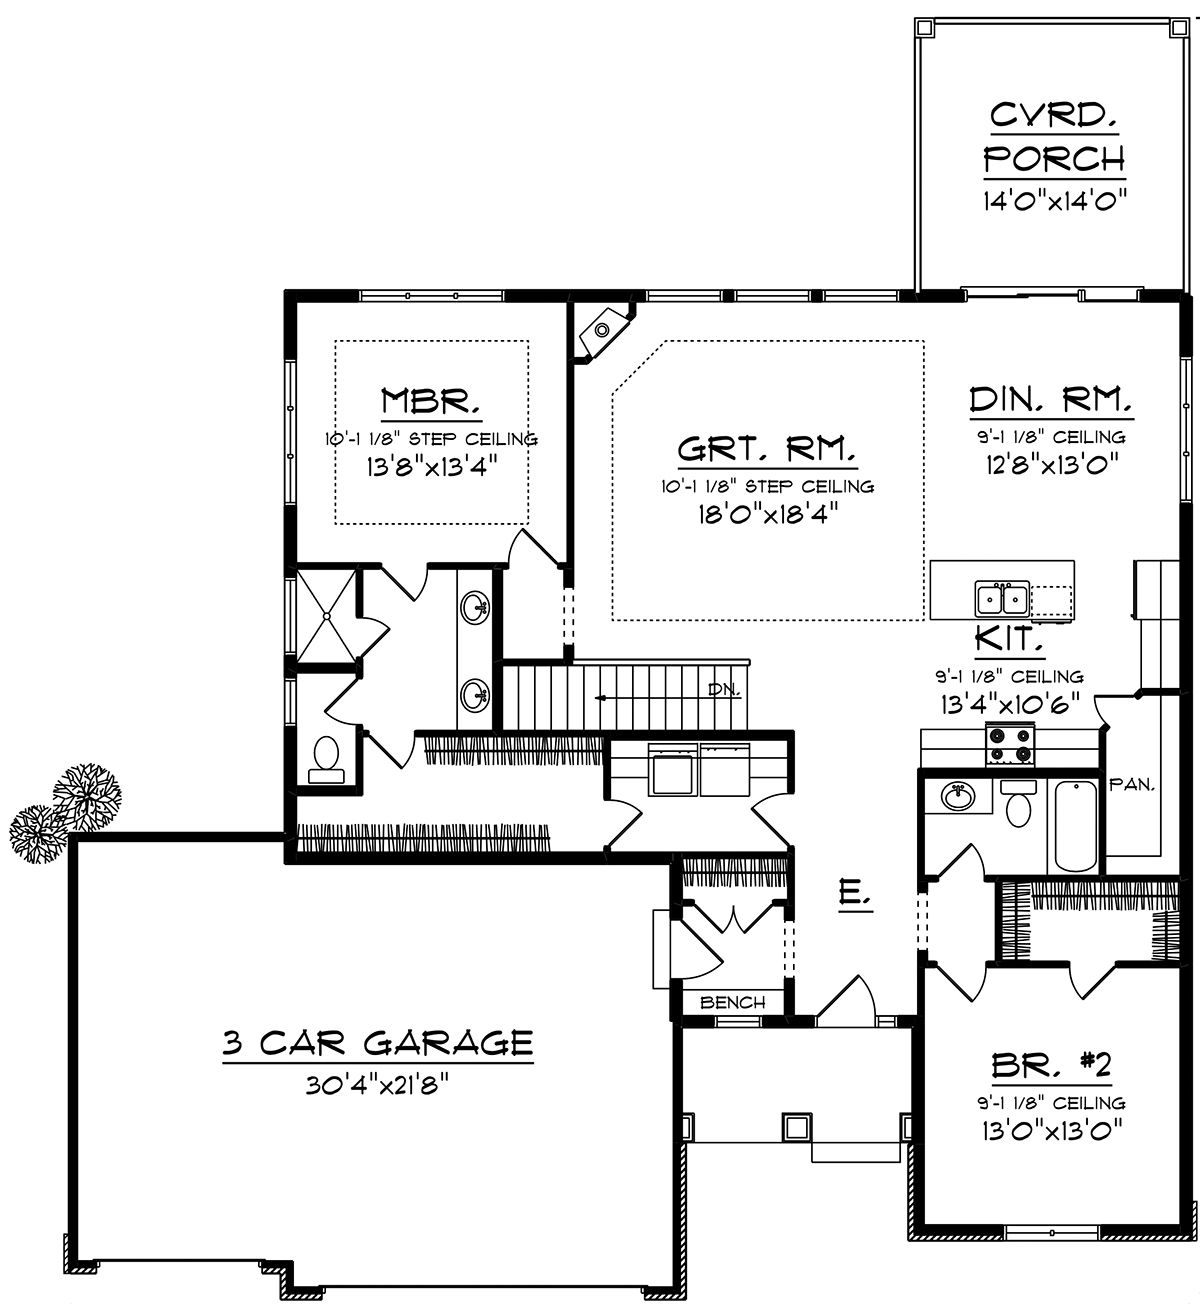 House Plan 1020 00007 Ranch Plan 1 703 Square Feet 2 Bedrooms 2 Bathrooms Ranch Style House Plans Bedroom House Plans New House Plans